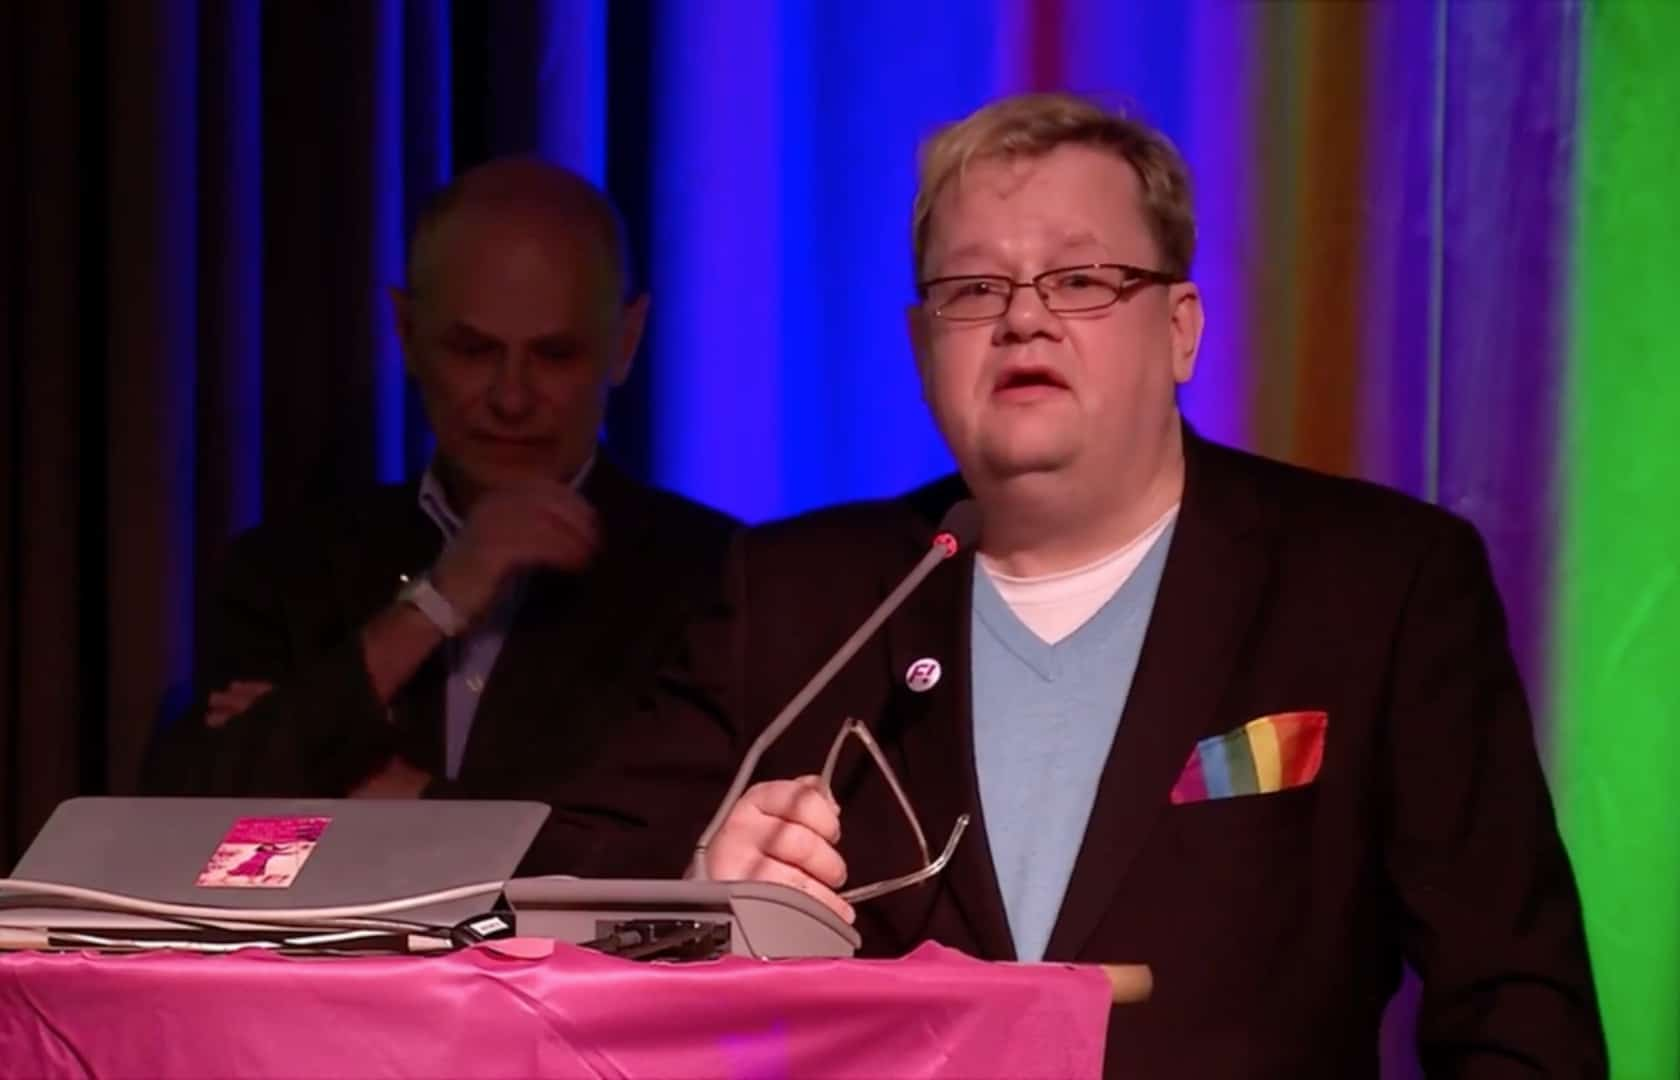 Gay priest refuses to marry straight couples to expose 'reprehensible' loophole